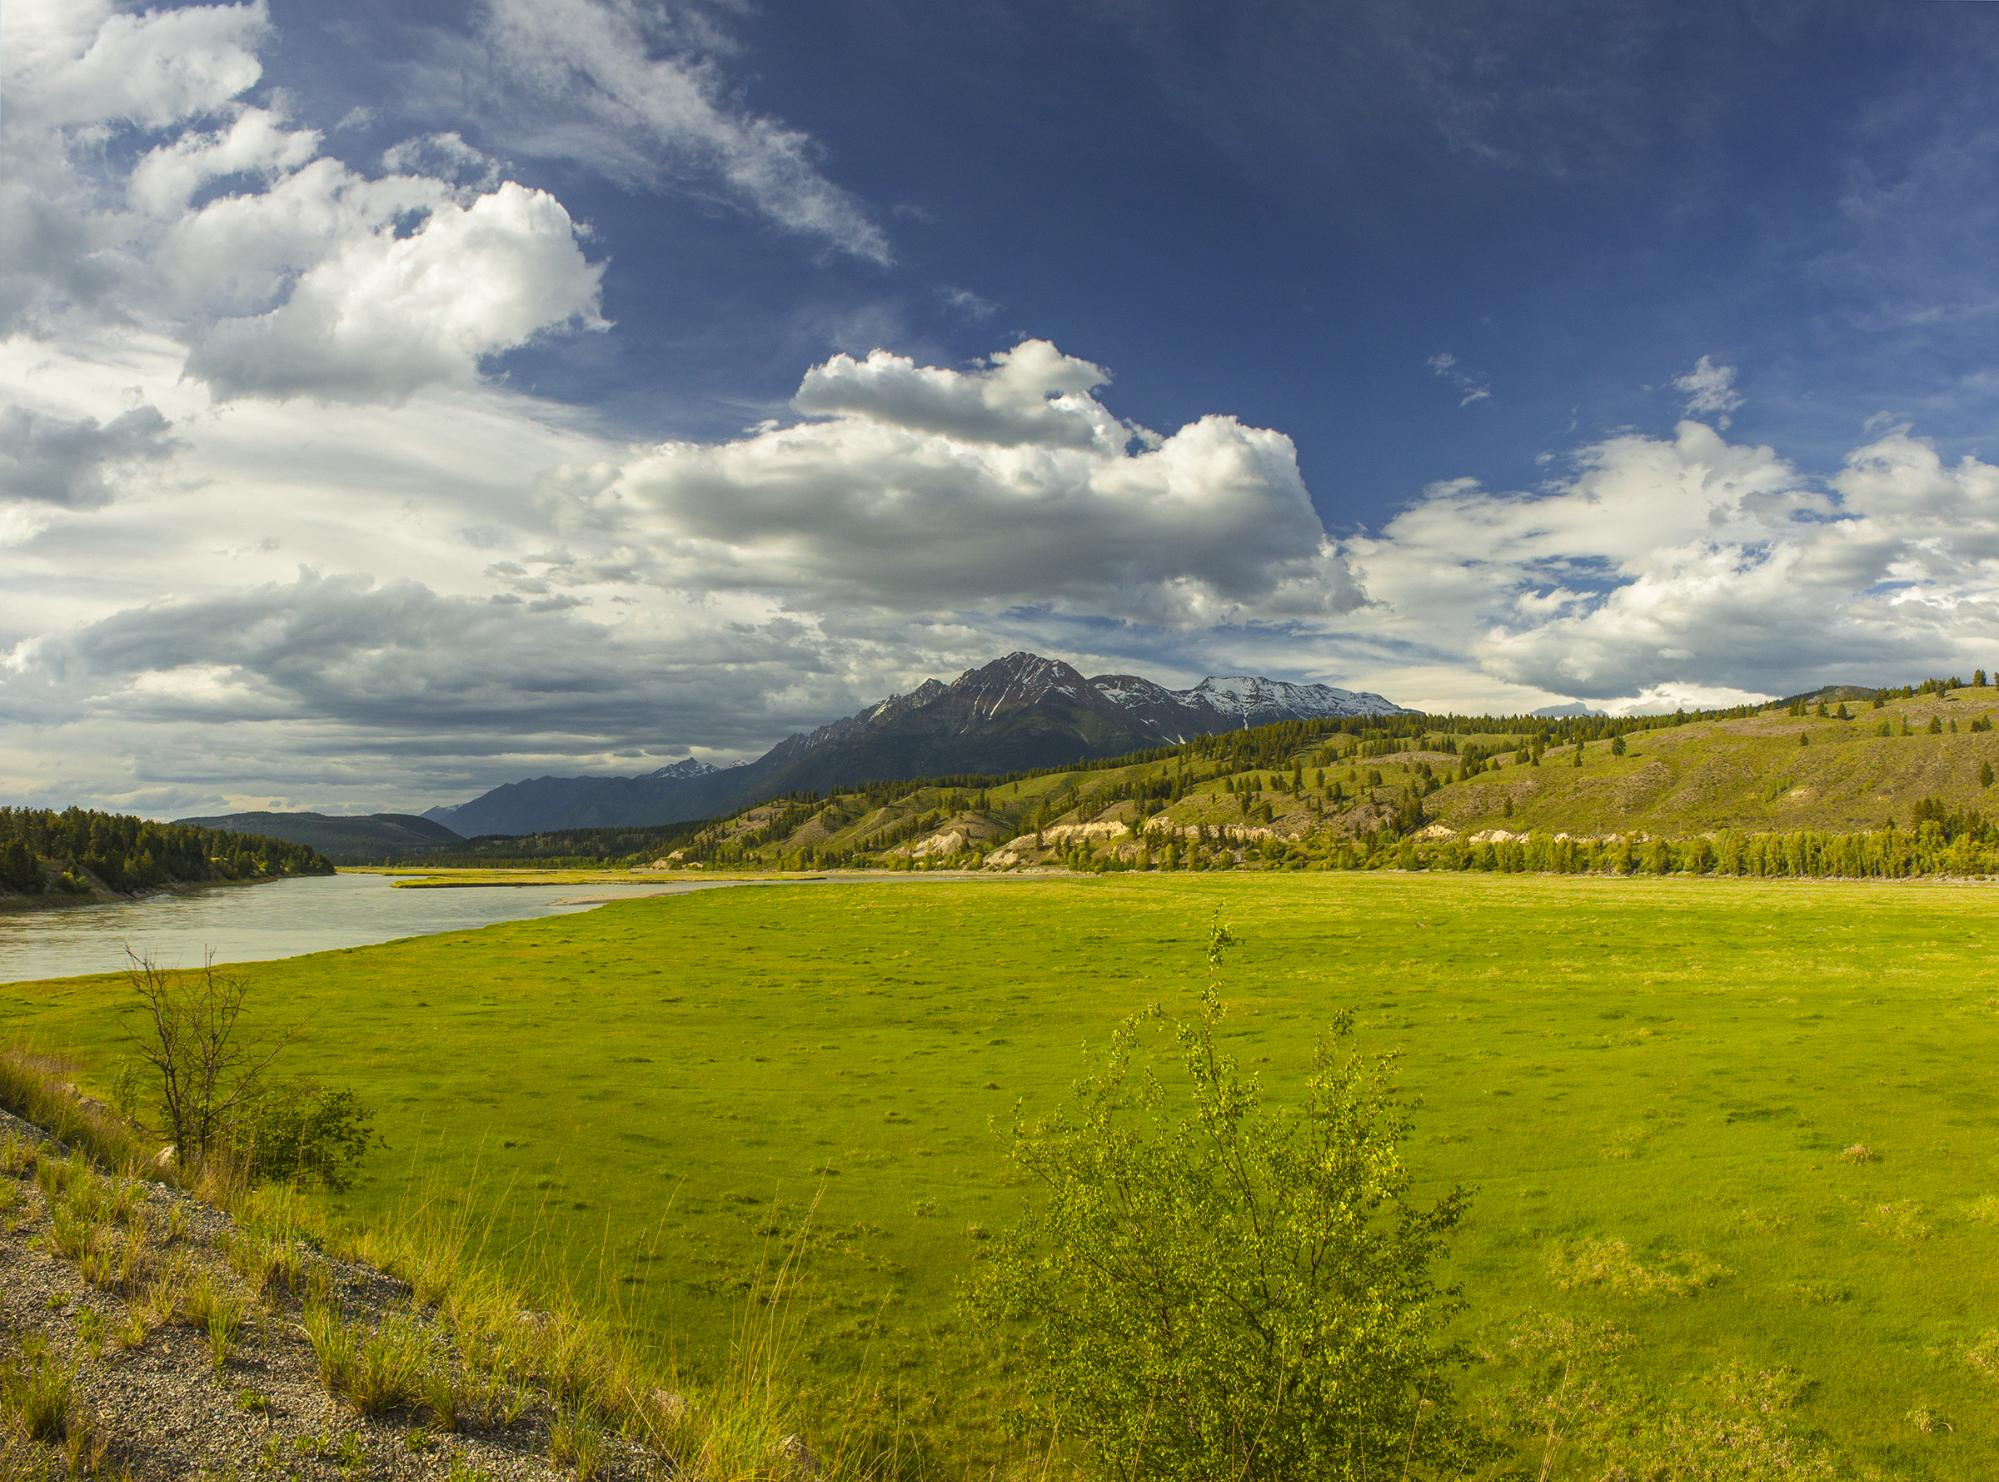 A lush, sprawling landscape is nestled between a river and a mountain range.